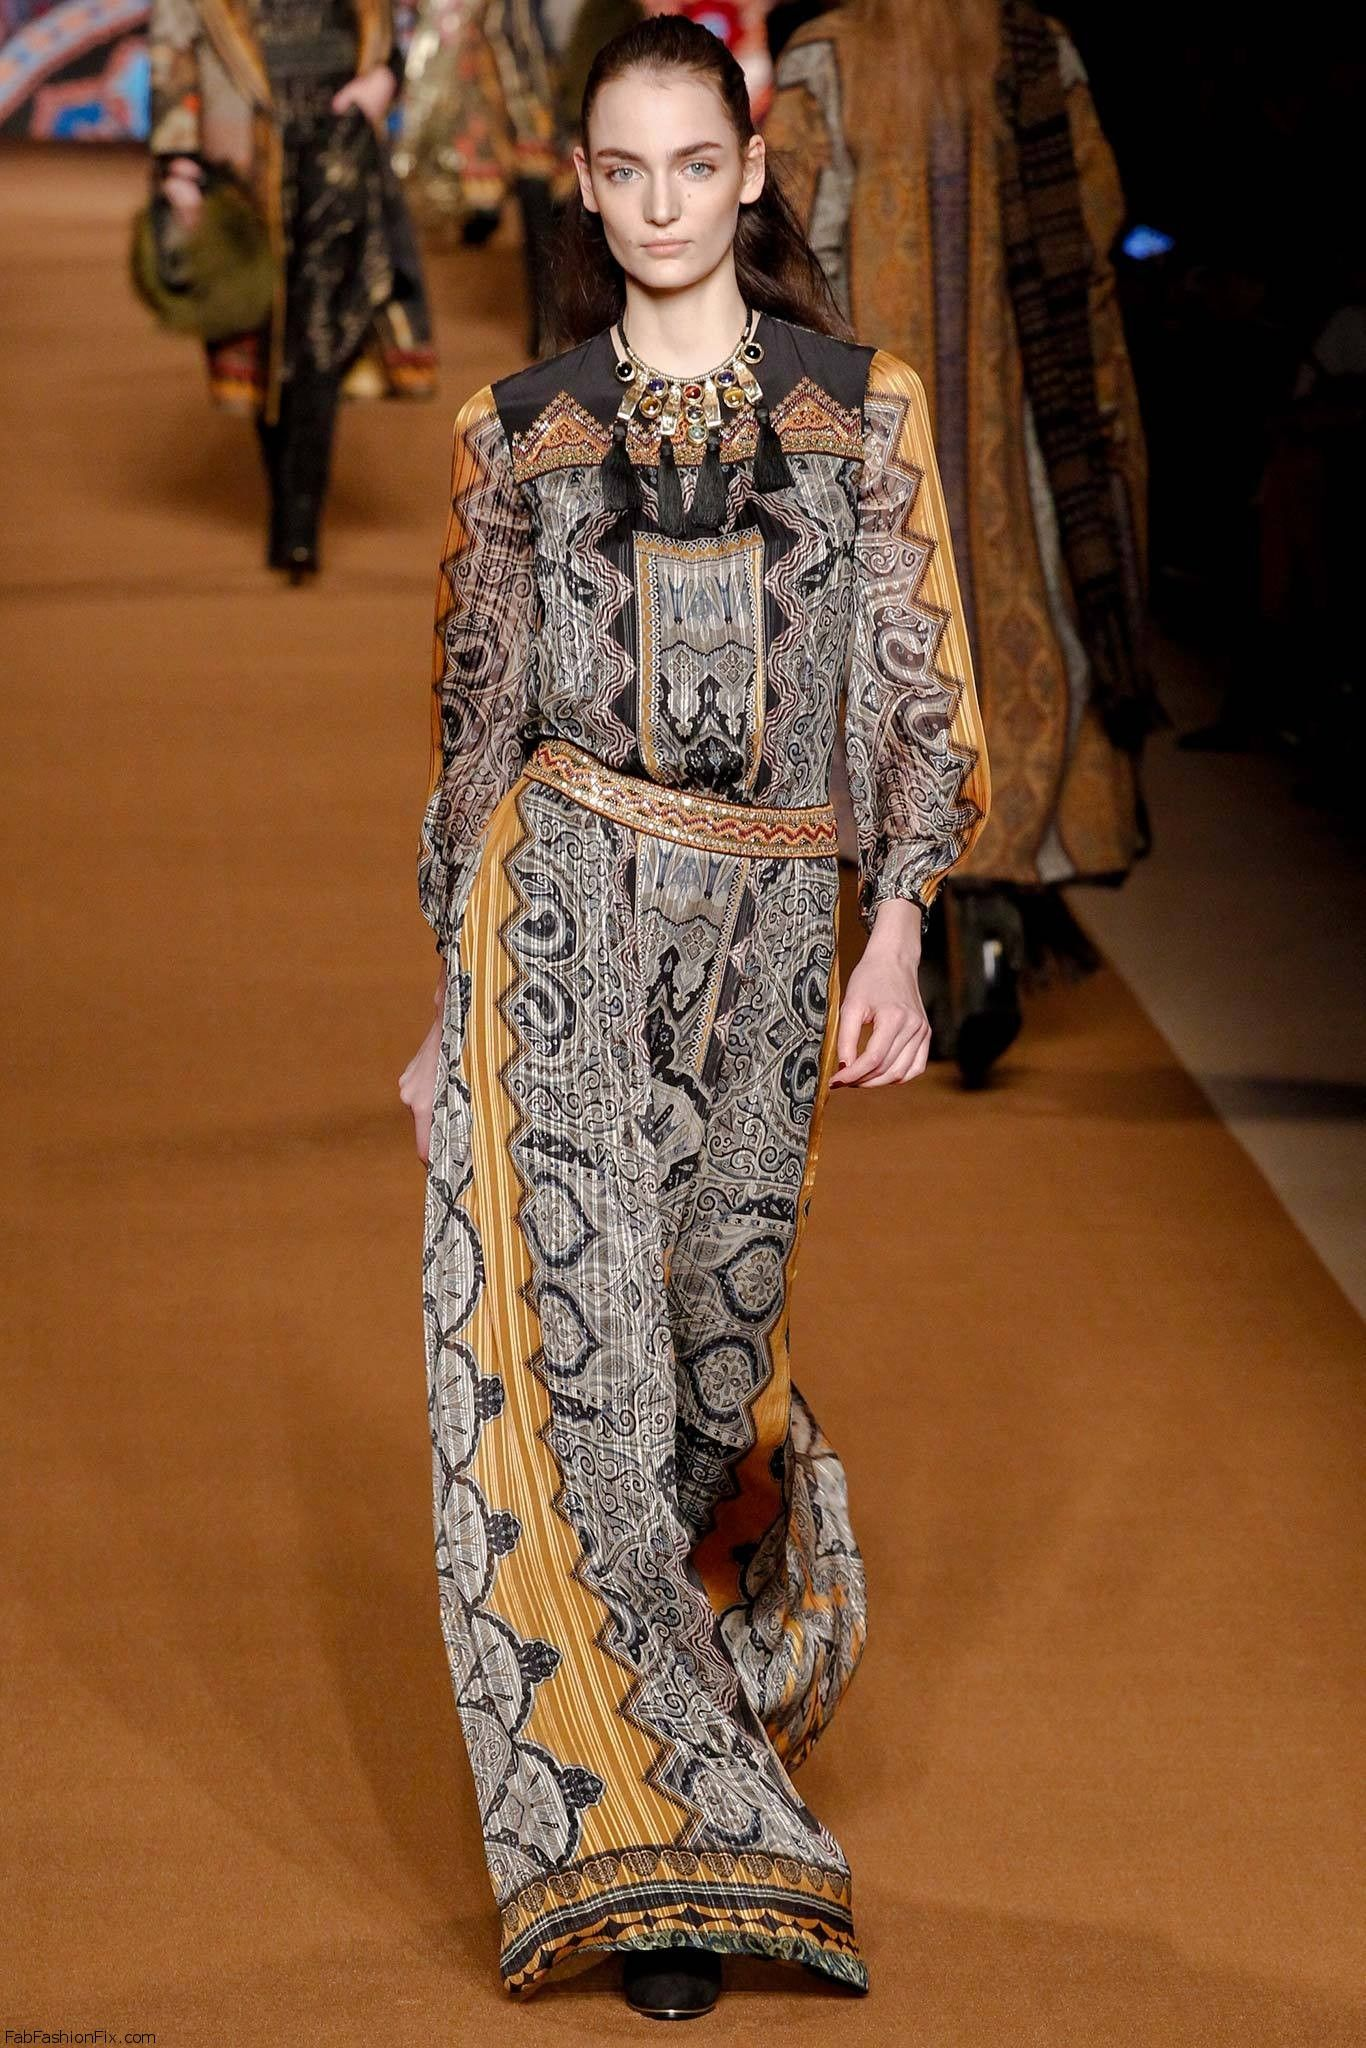 etro fall winter 2014 collection milan fashion week fab fashion fix. Black Bedroom Furniture Sets. Home Design Ideas